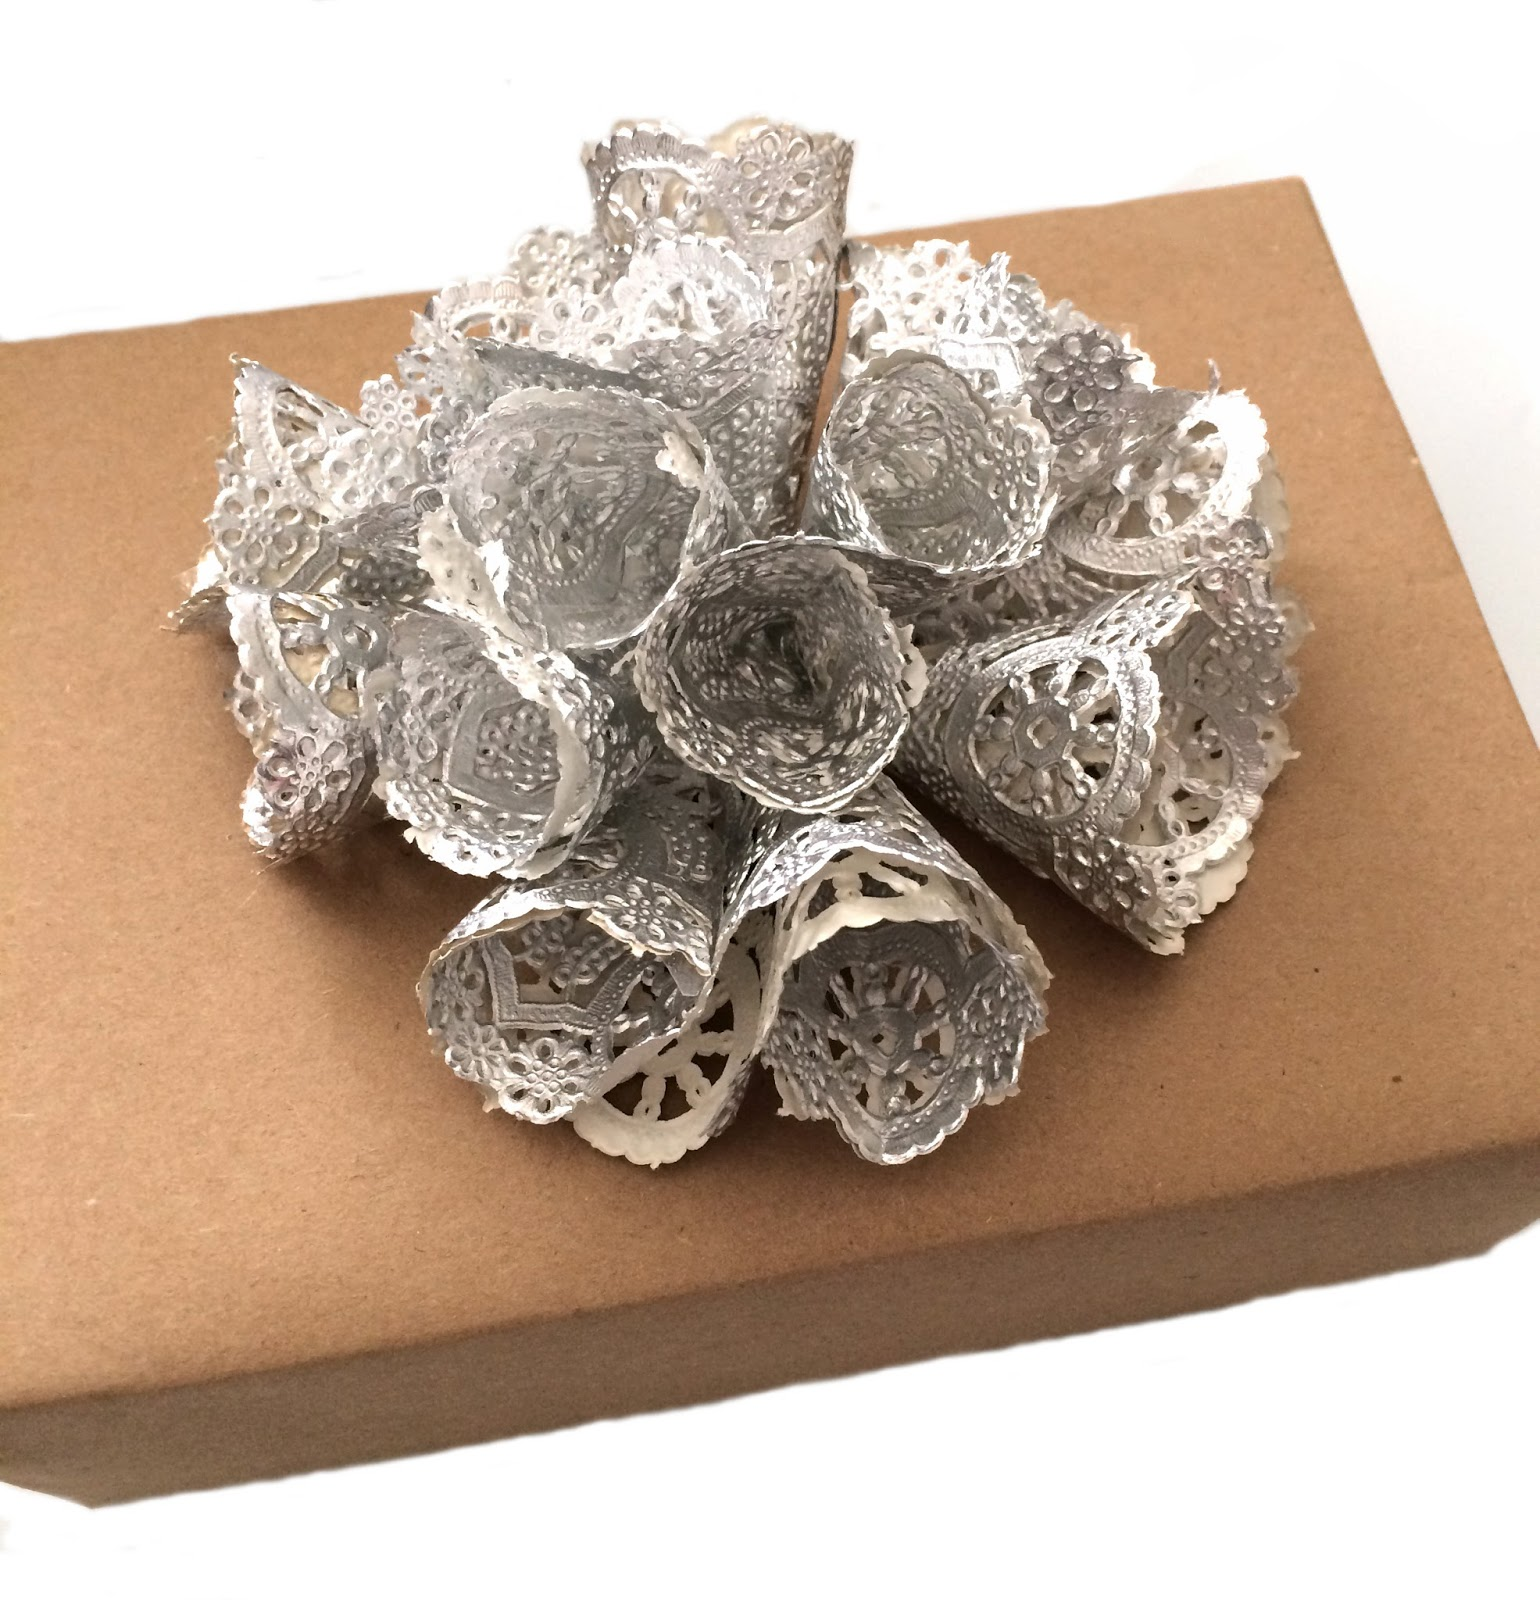 Laurl Designshandmade holiday gift wrapping with paper doilies